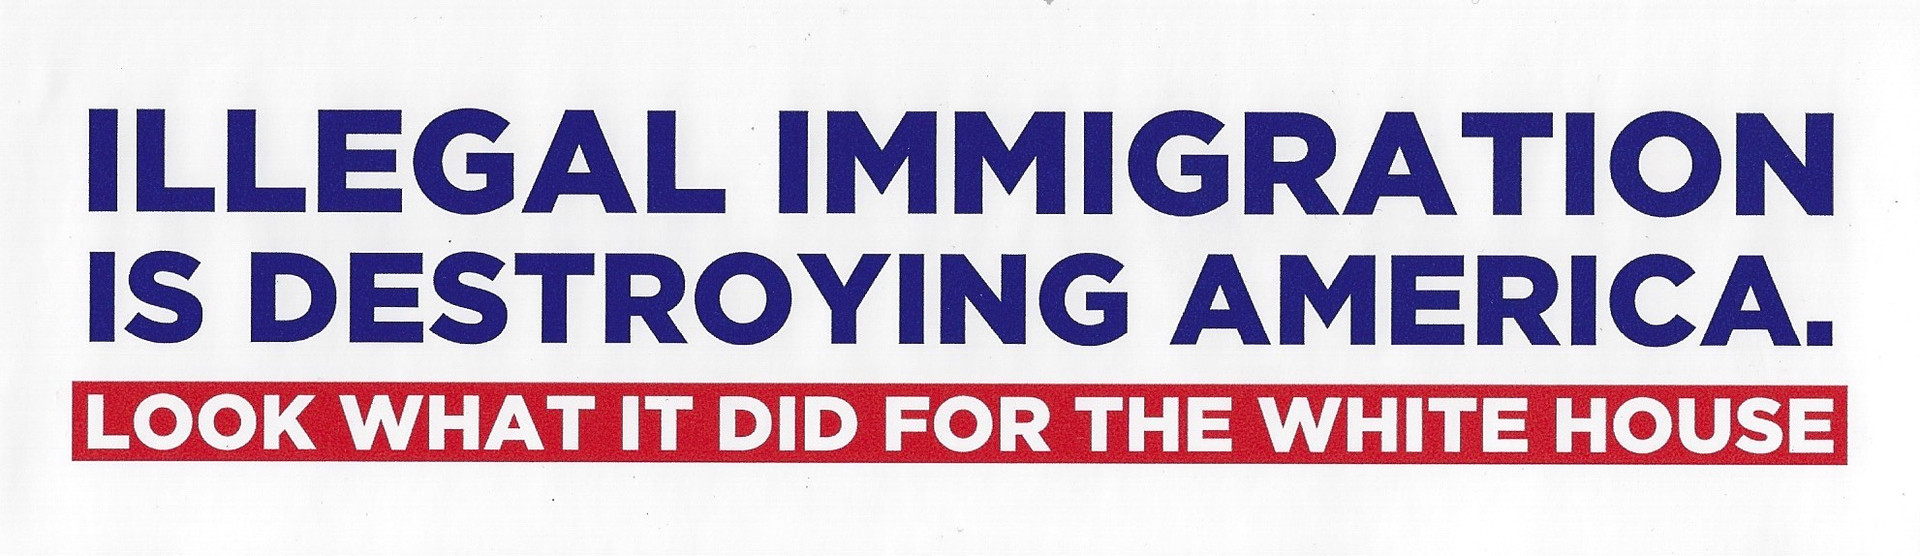 Illegal Immigration is Destroying